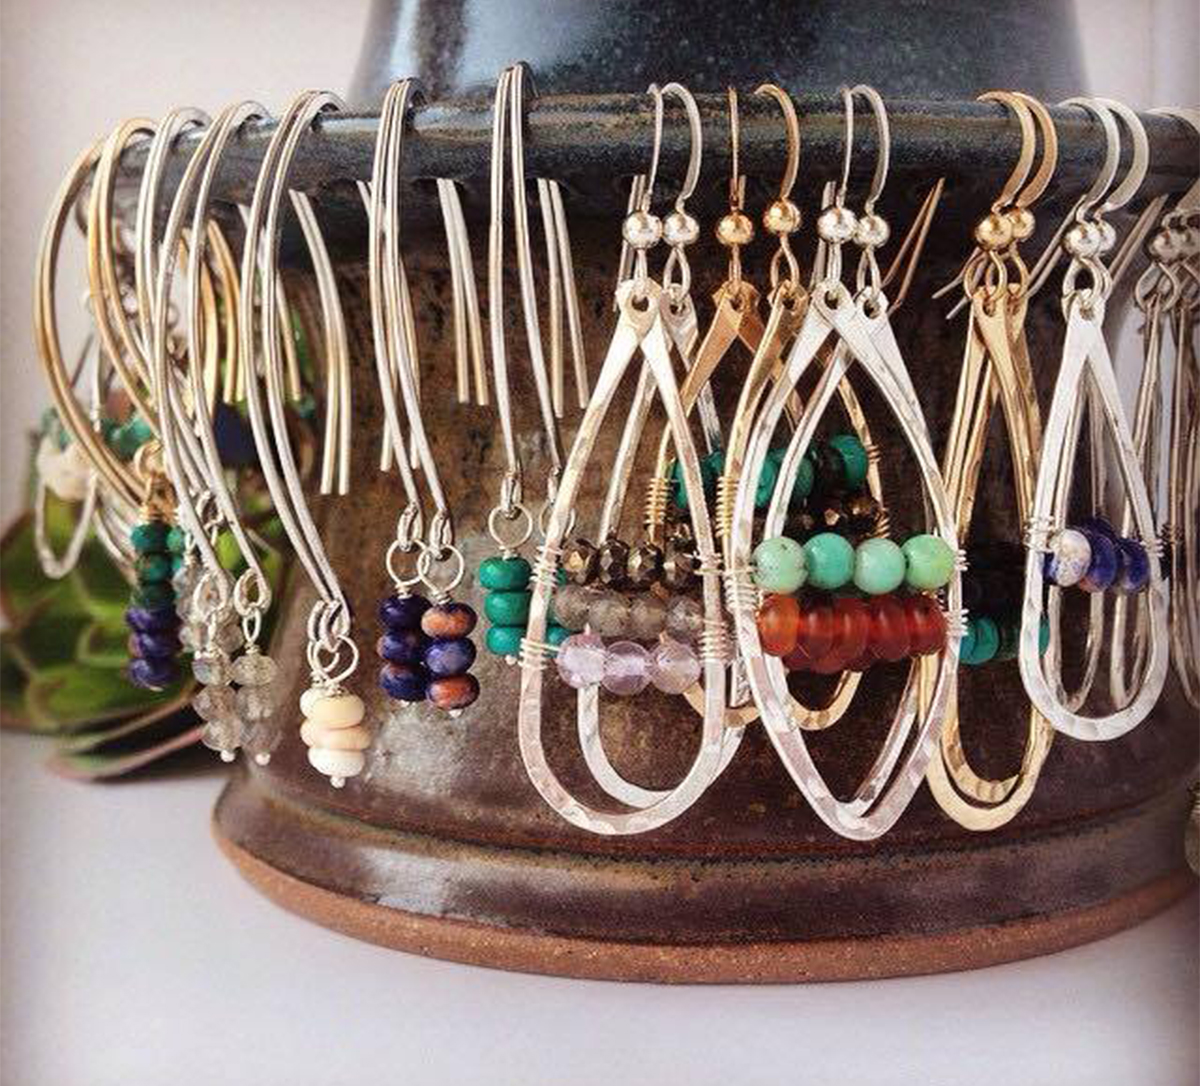 Earth Girl Designs jewelry created by Tupper Lake native, Rachael King. (photo provided)